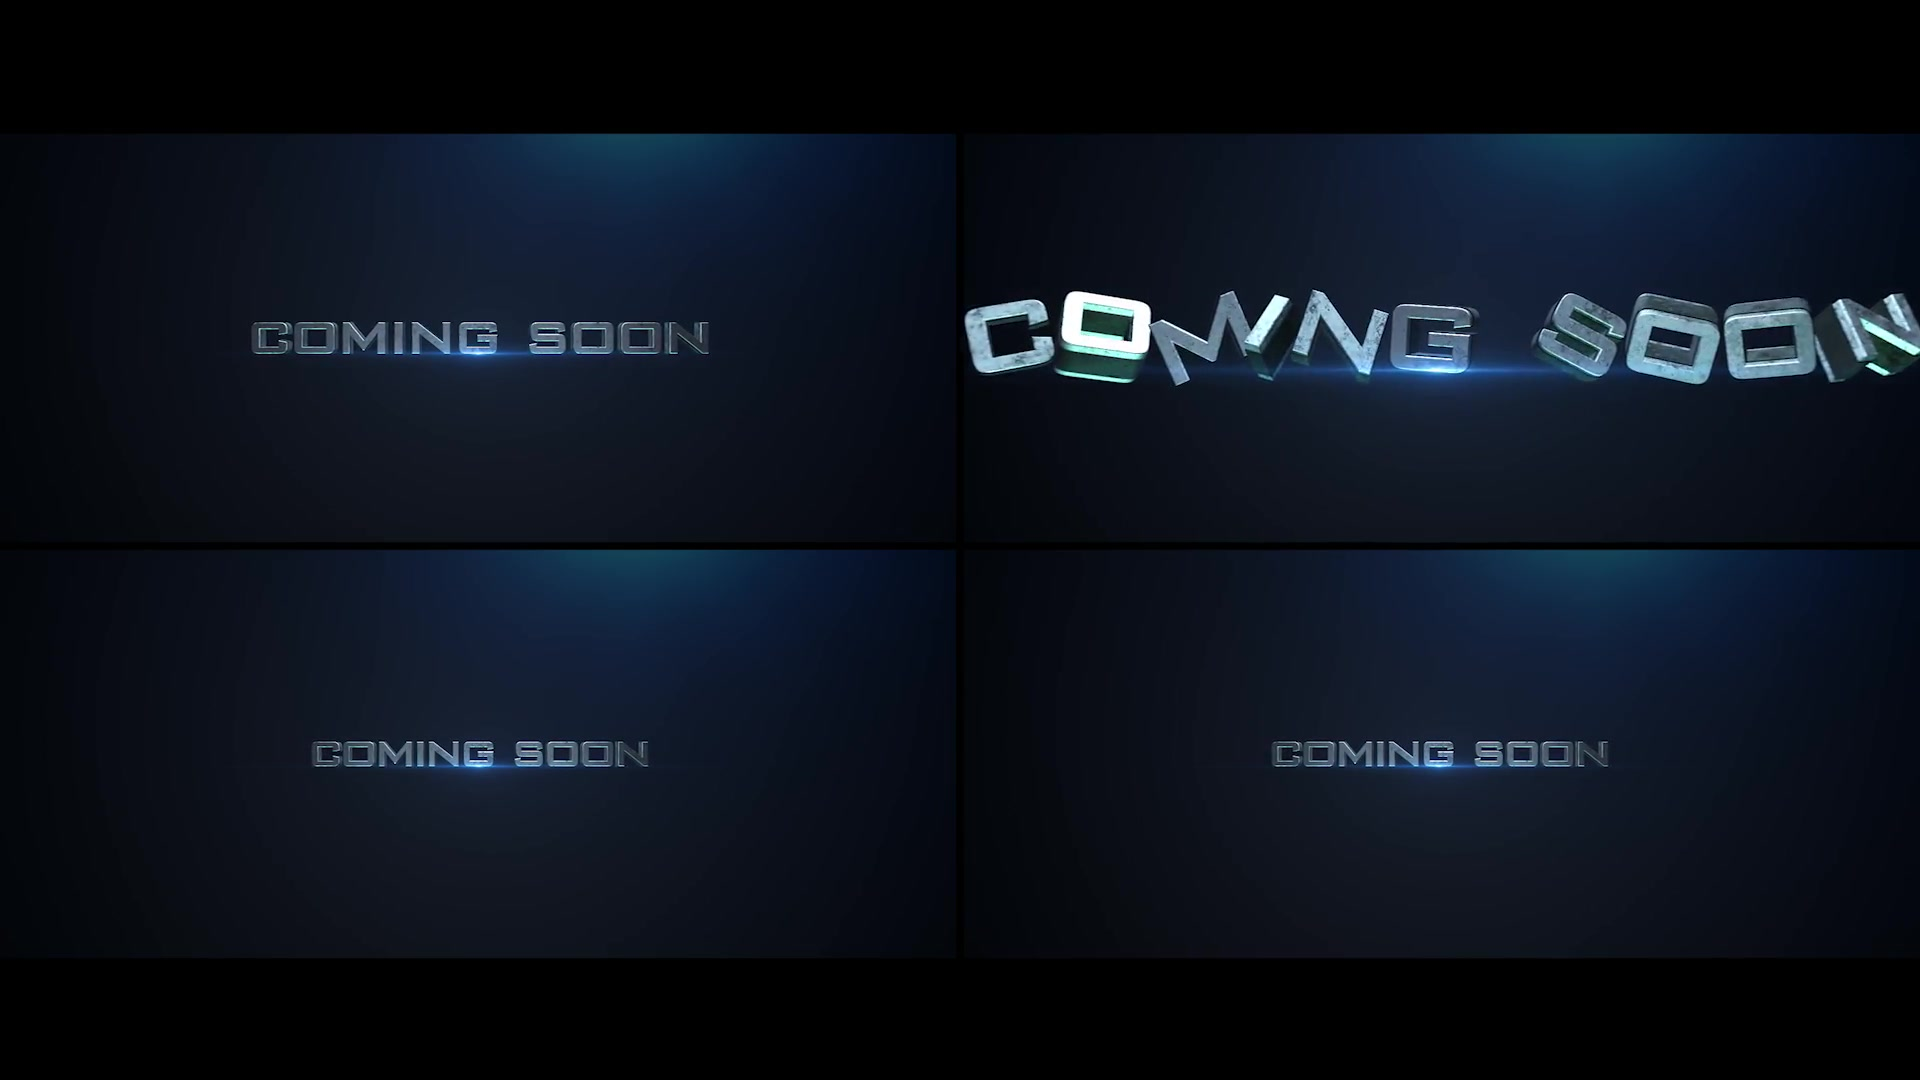 Trailer Titles Pack - Download Videohive 15419714